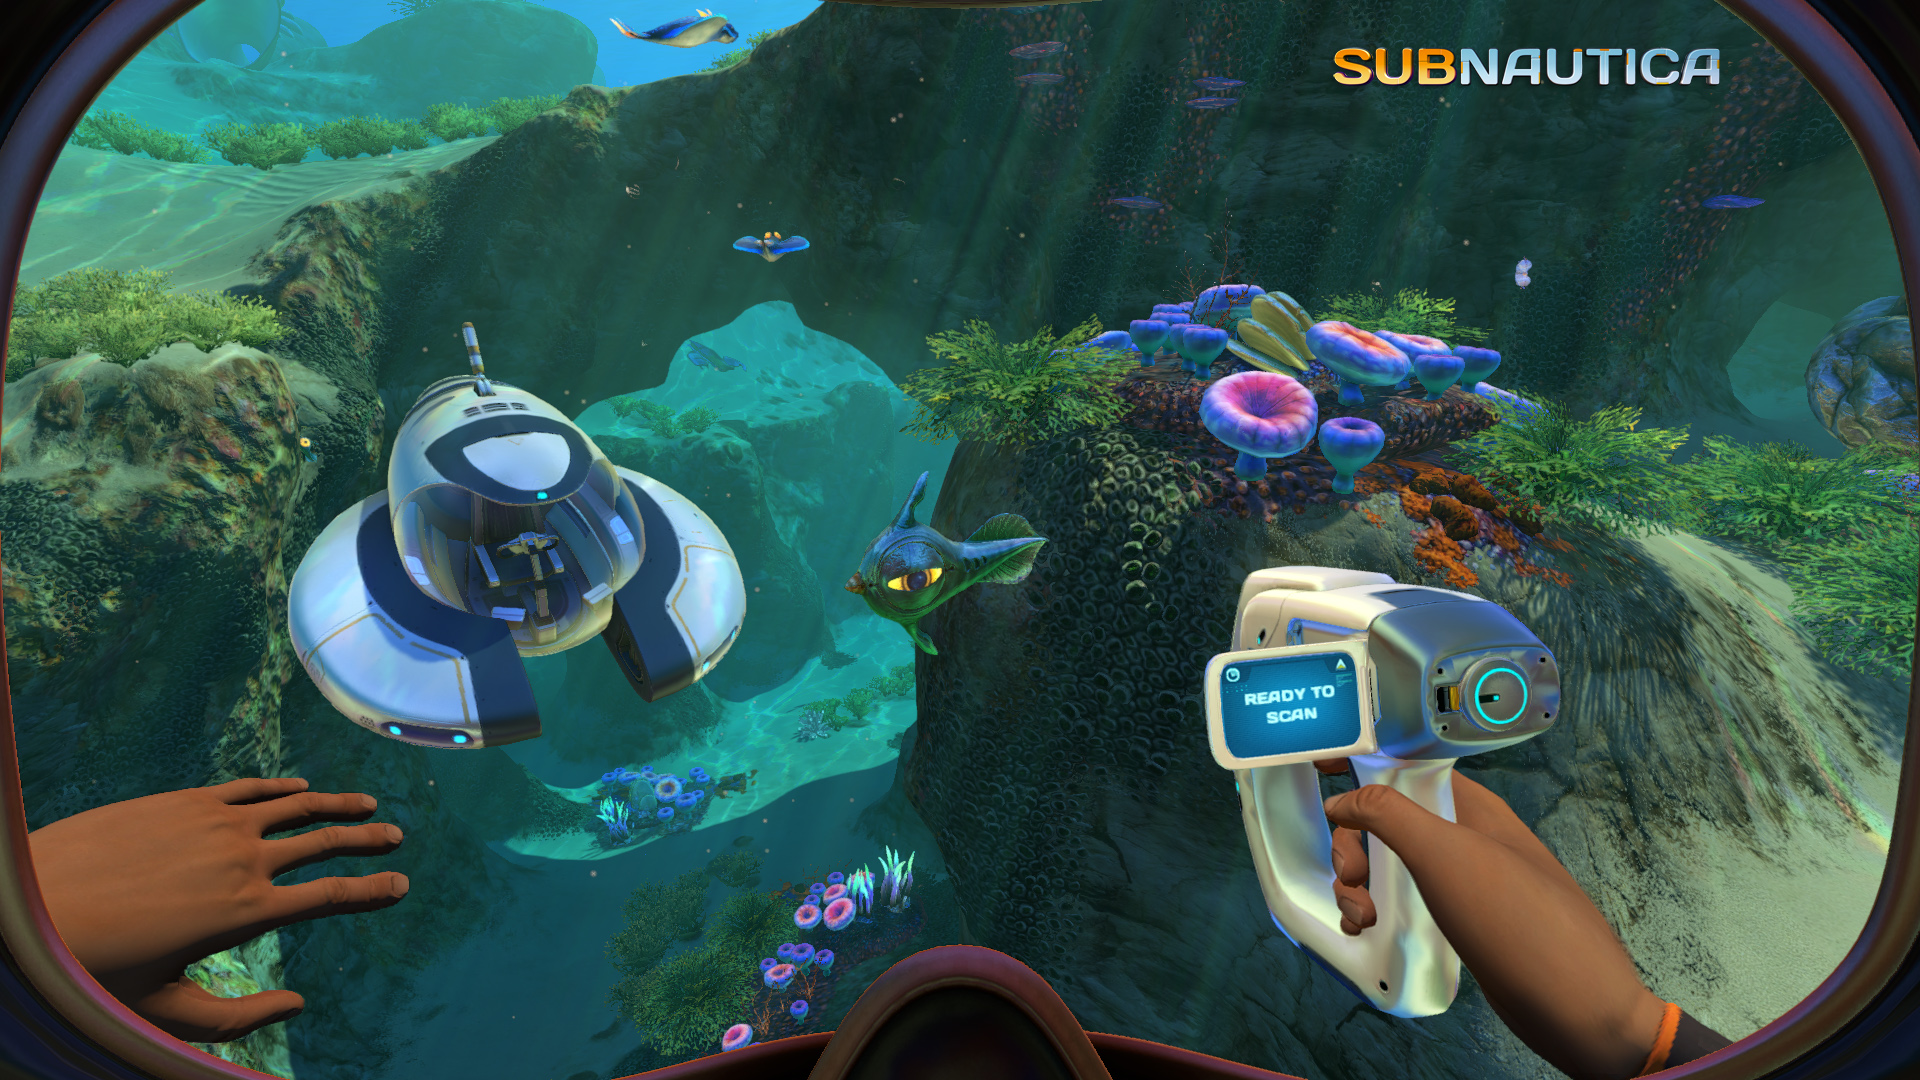 Find the best laptop for Subnautica